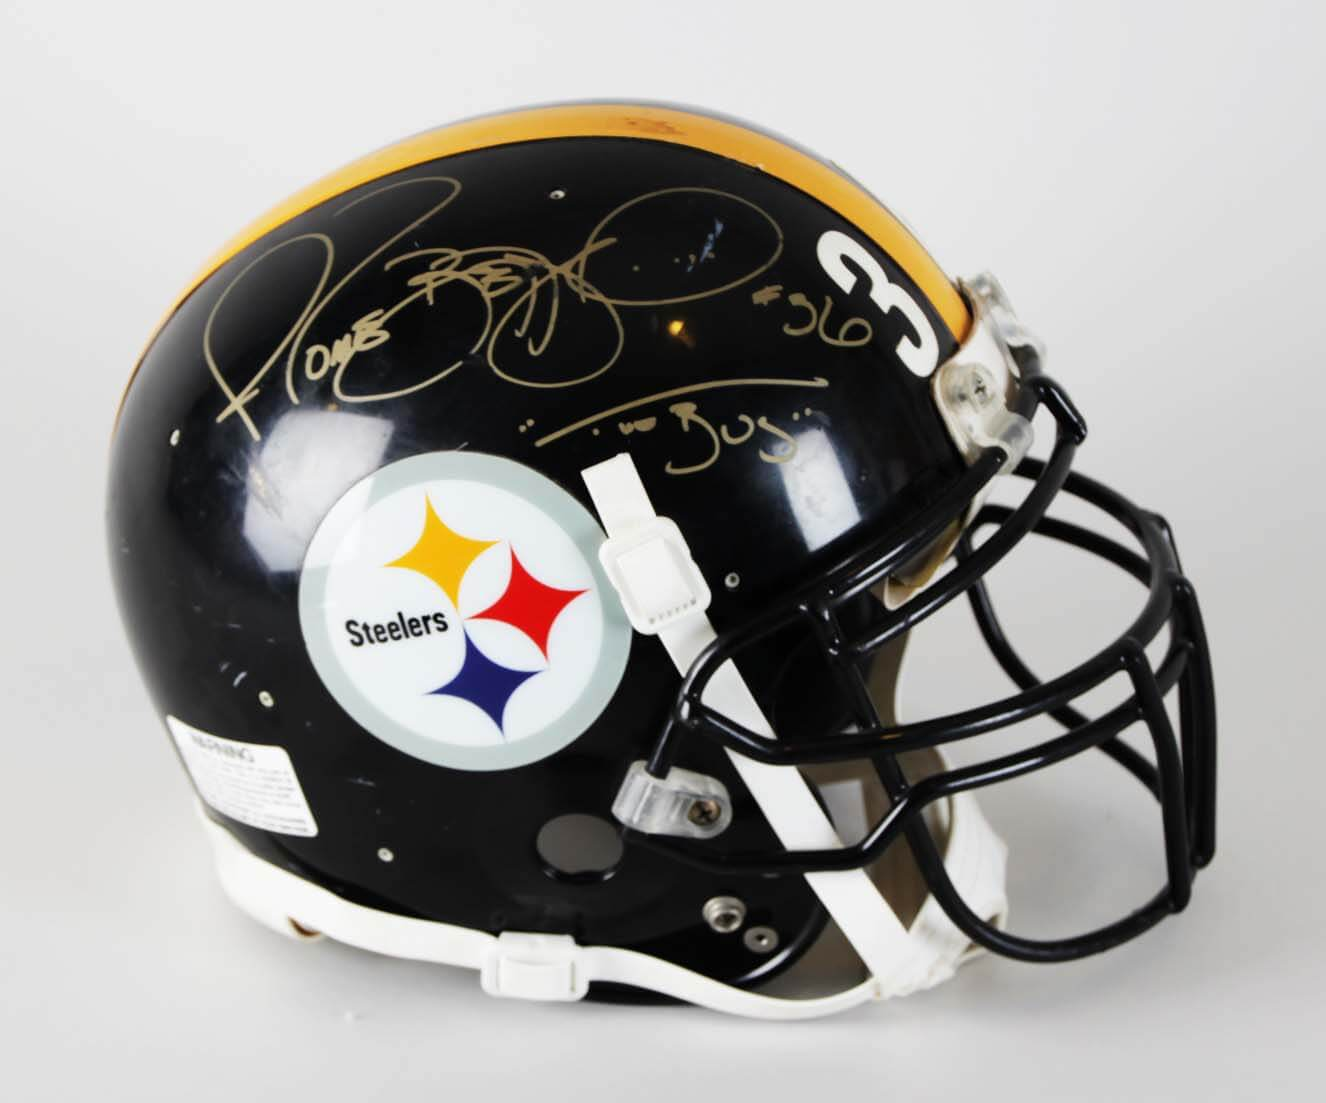 hot sale online 0f56e d9557 Jerome Bettis Signed Pittsburgh Steelers Game-Worn Helmet w/Inscriptions -  JSA